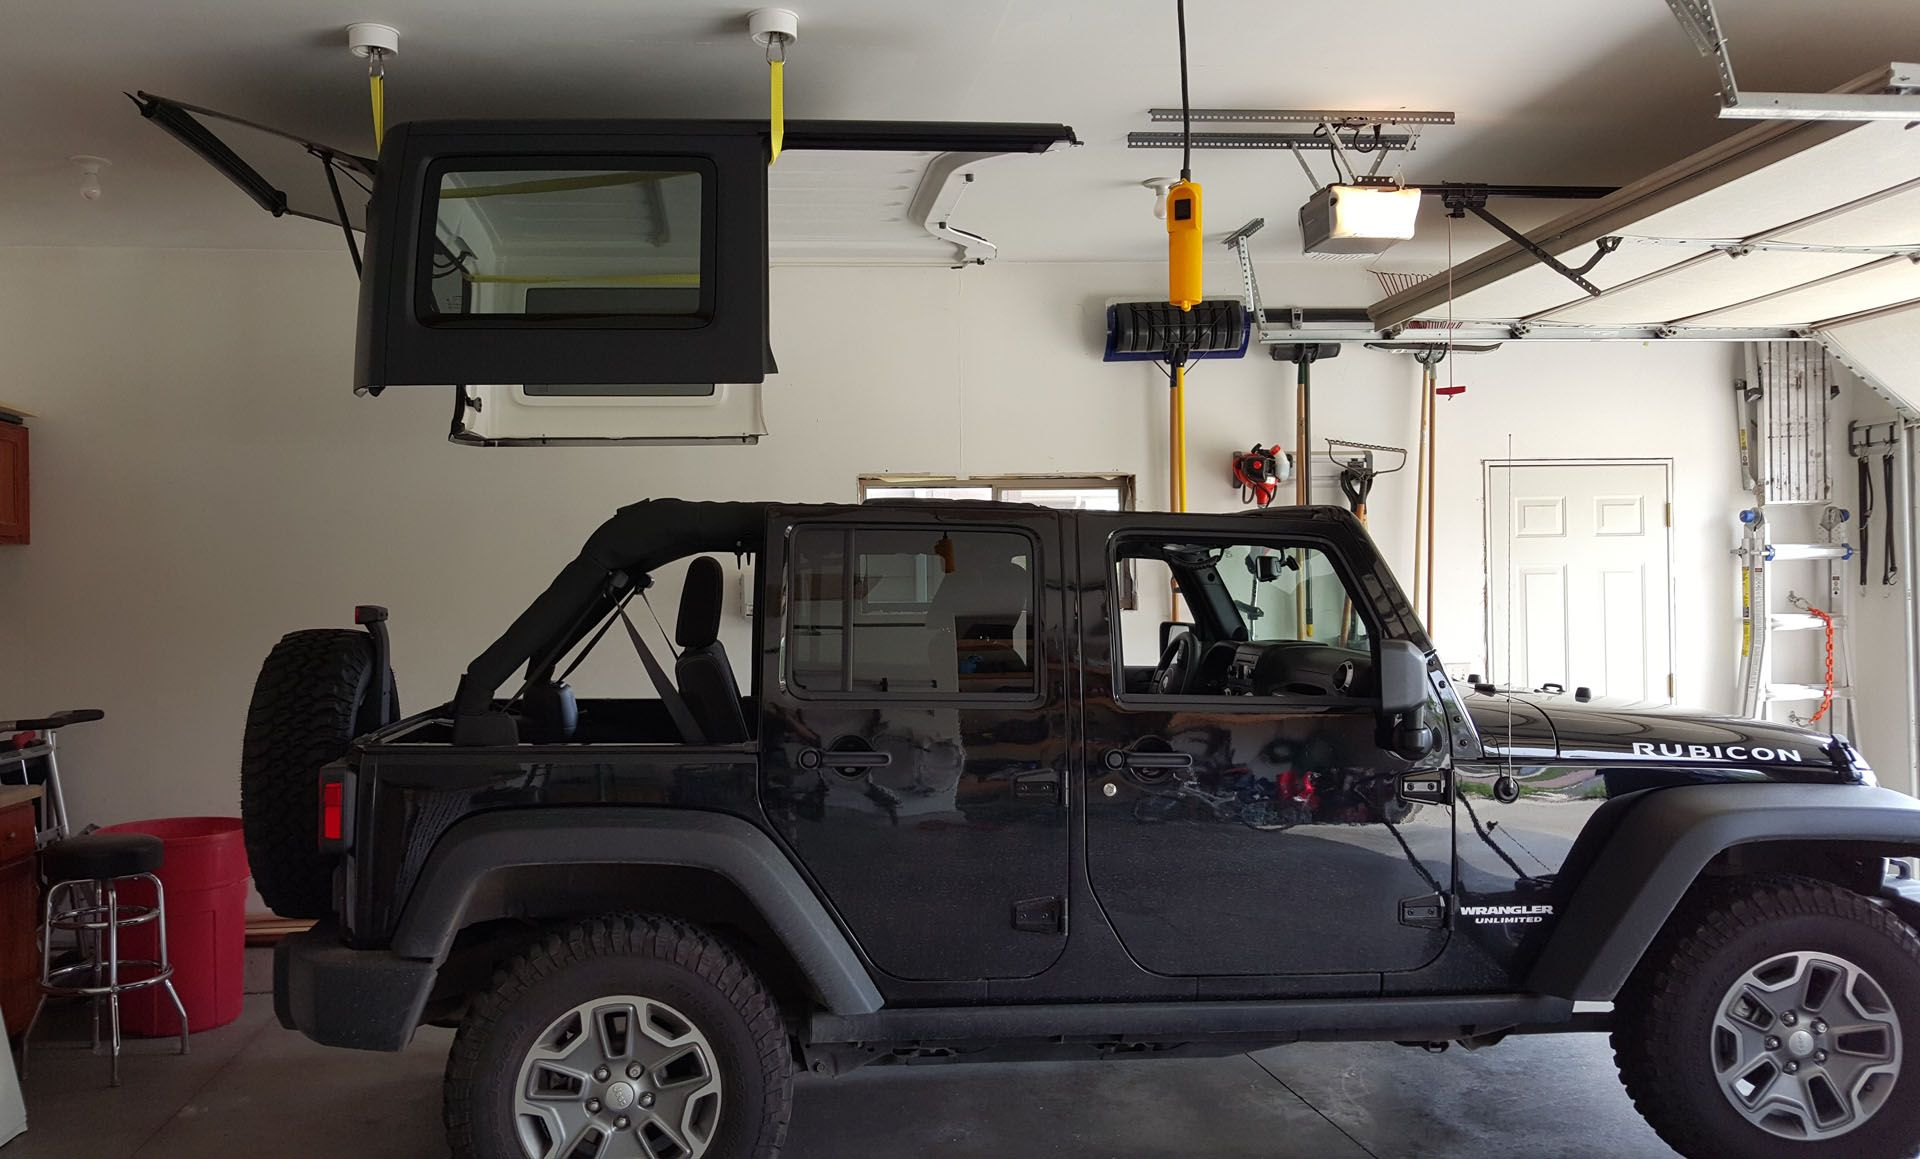 Electric Hoist And Lift Installed In Garage For Jeep Hardtop